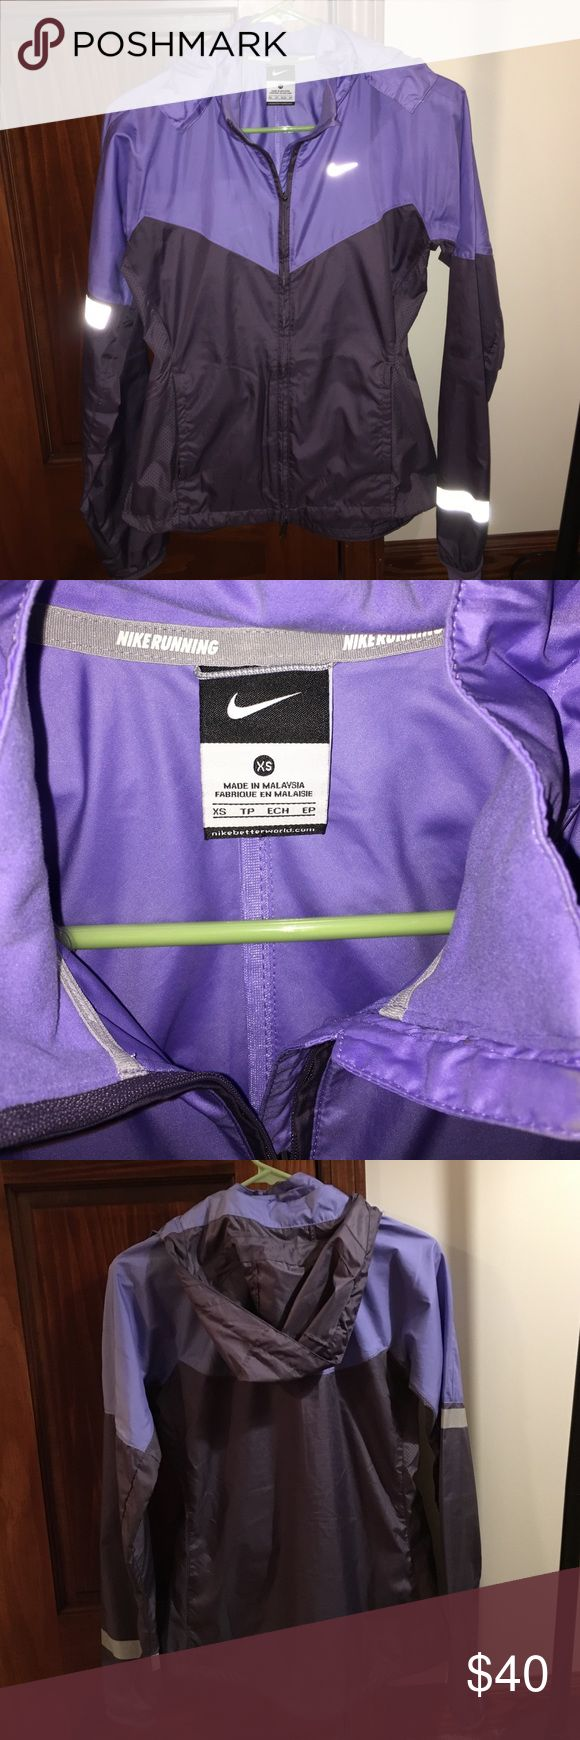 💜Shades of purple Nike running jacket- XS Nike running jacket🏃🏼♀️ Super light weight. Shades of purple. Removable hood. In great condition! Only worn a few times. Size XS💜 Nike Jackets & Coats